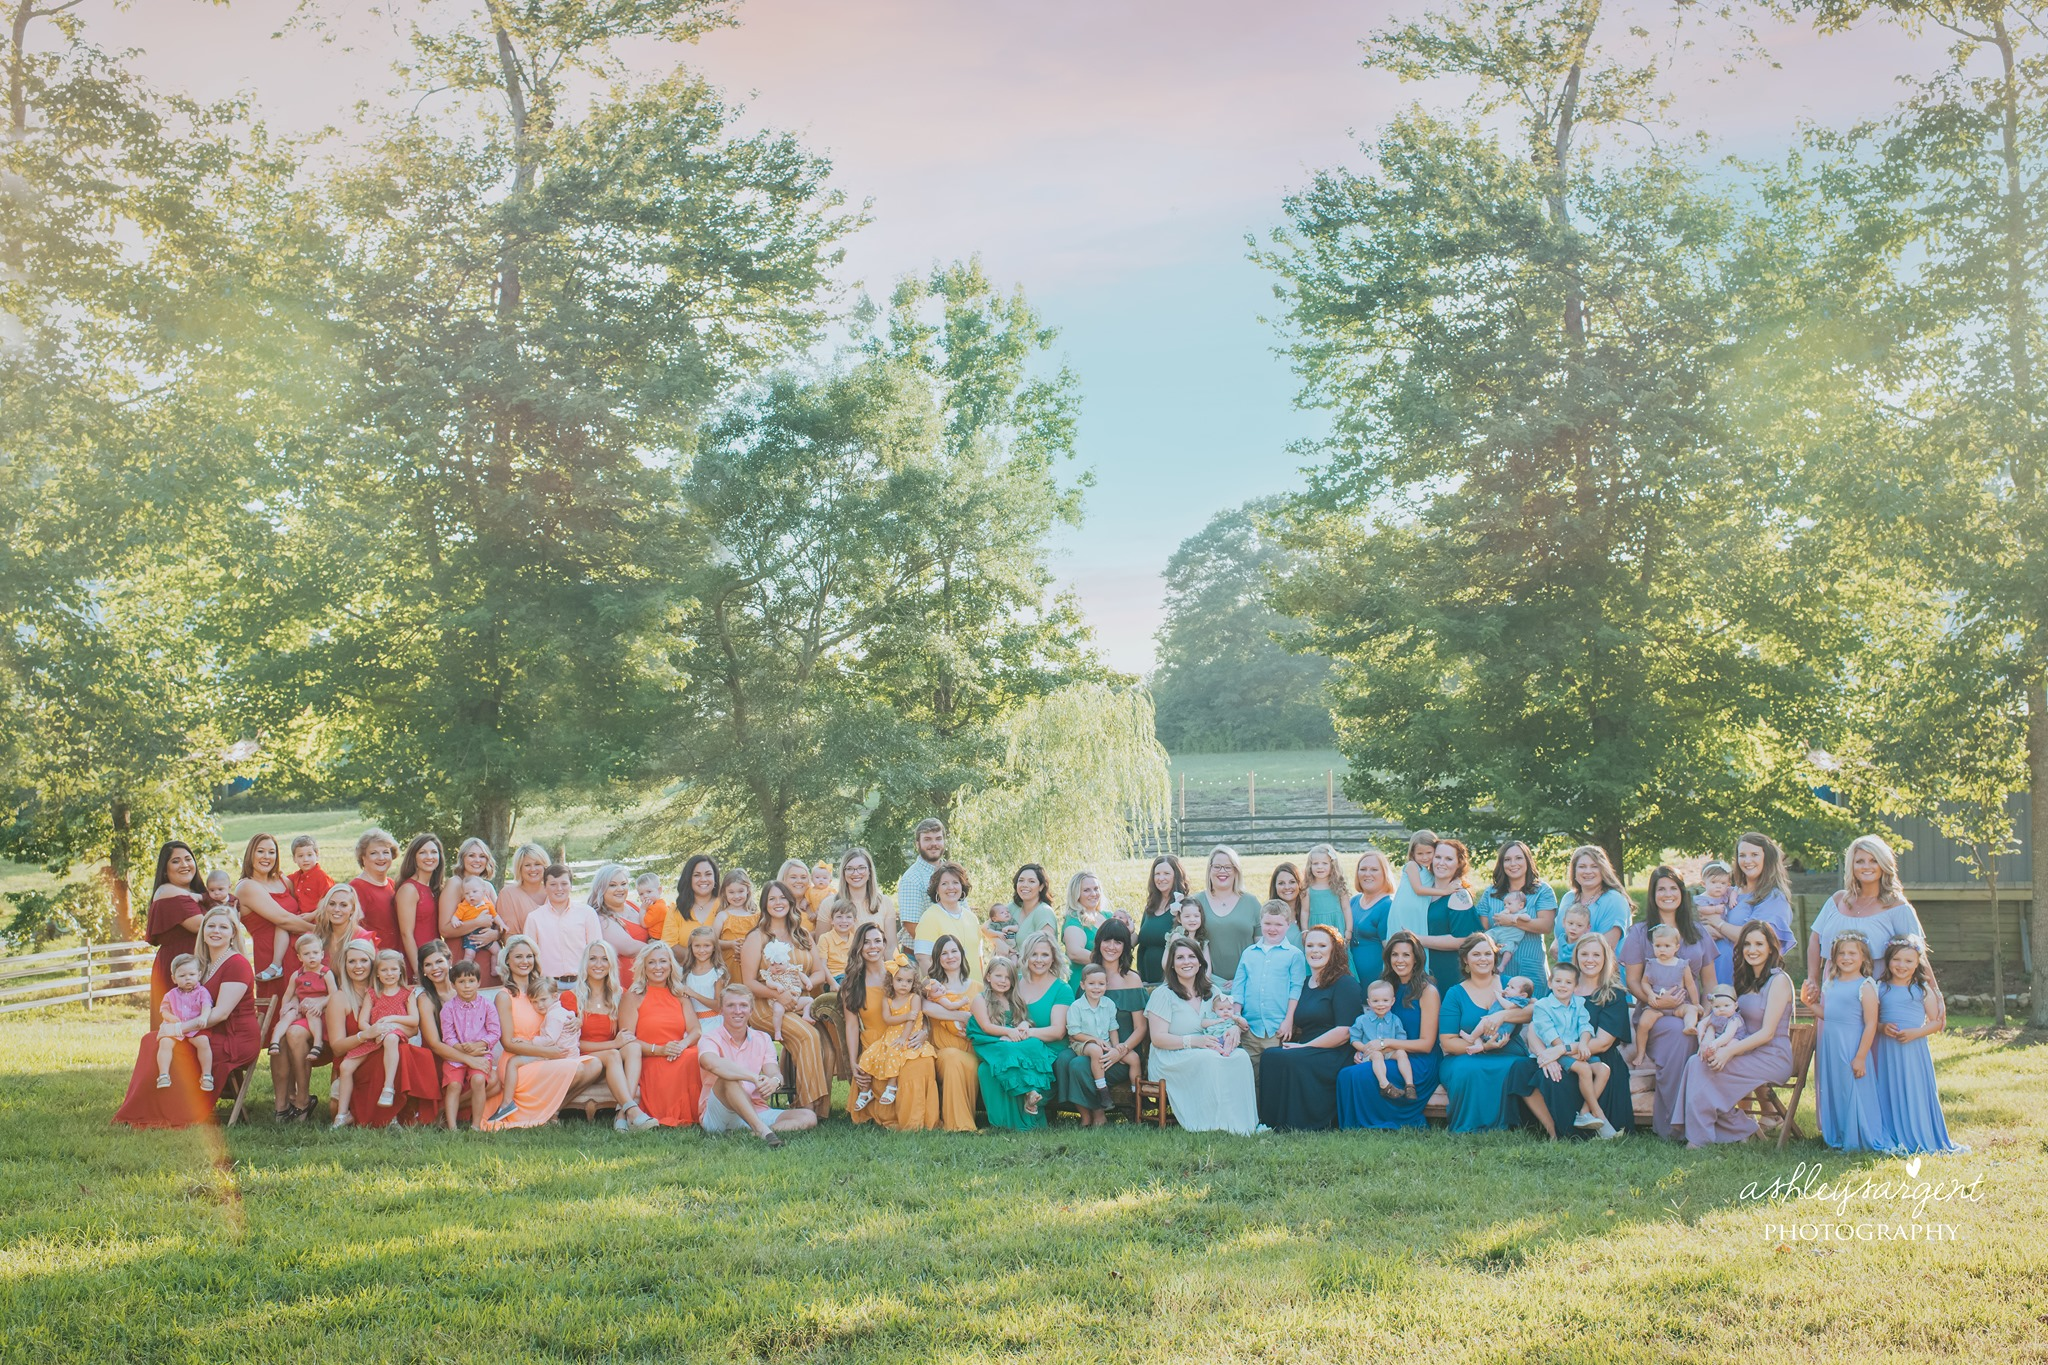 Dozens of Moms and Their Rainbow Babies Pose For a Colorful Photo Shoot